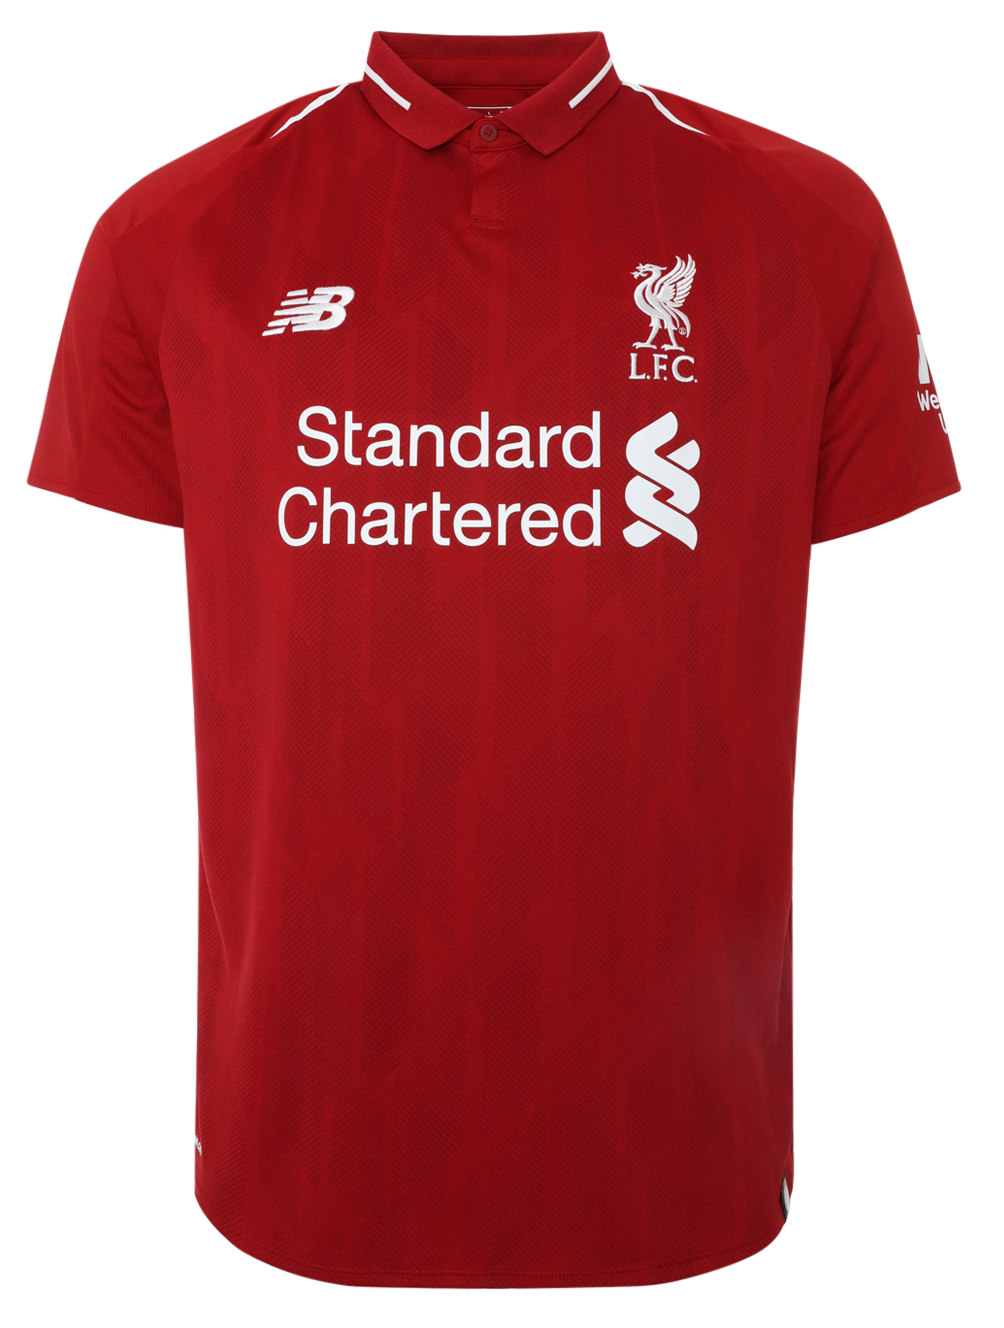 cff56da30e2 2018-19 LFC home kit revealed - pre-order now - Liverpool FC